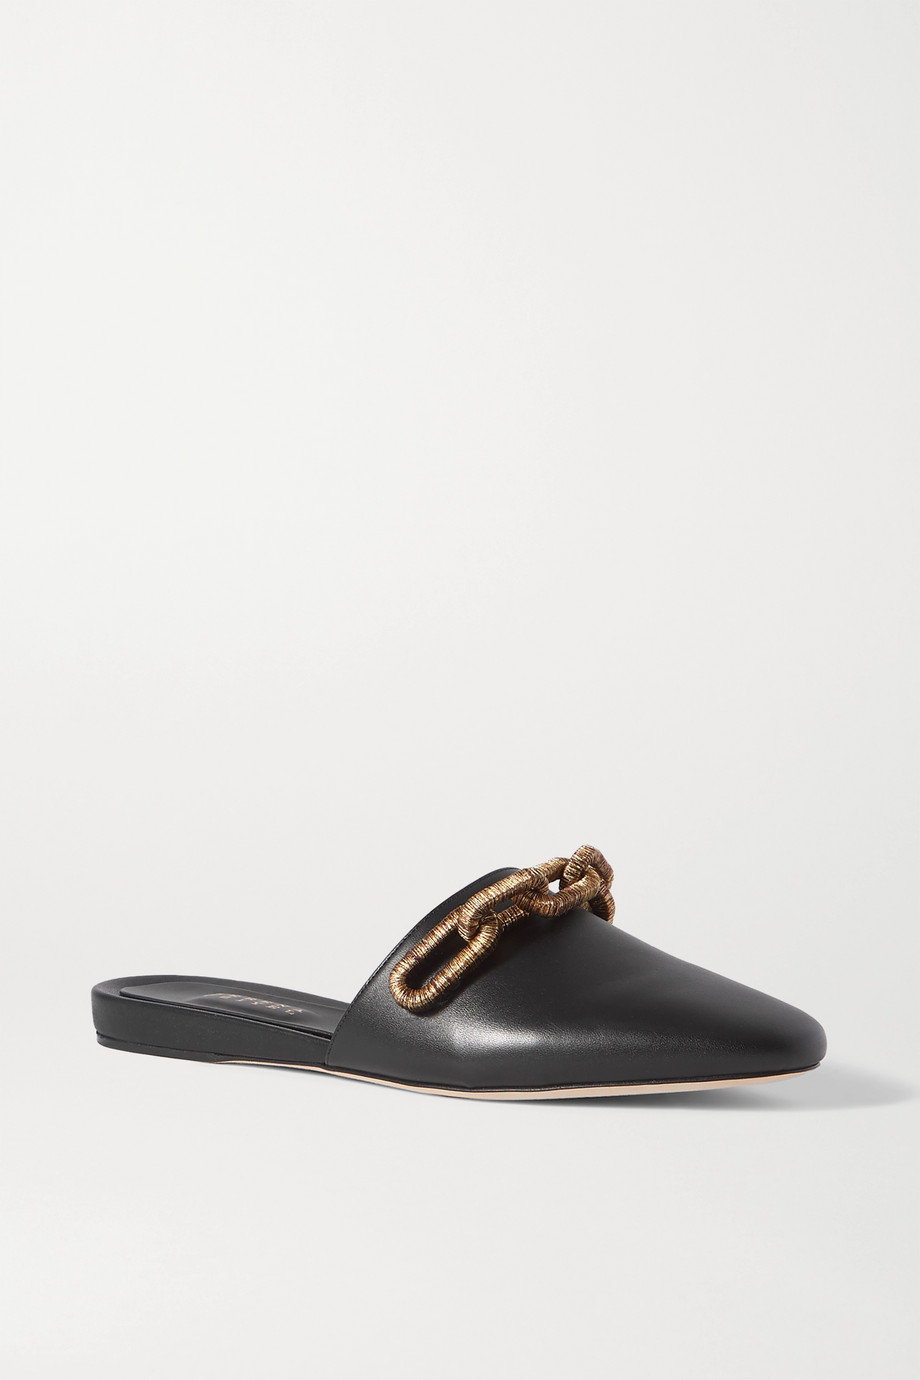 Serena Uziyel Catena embellished leather slippers